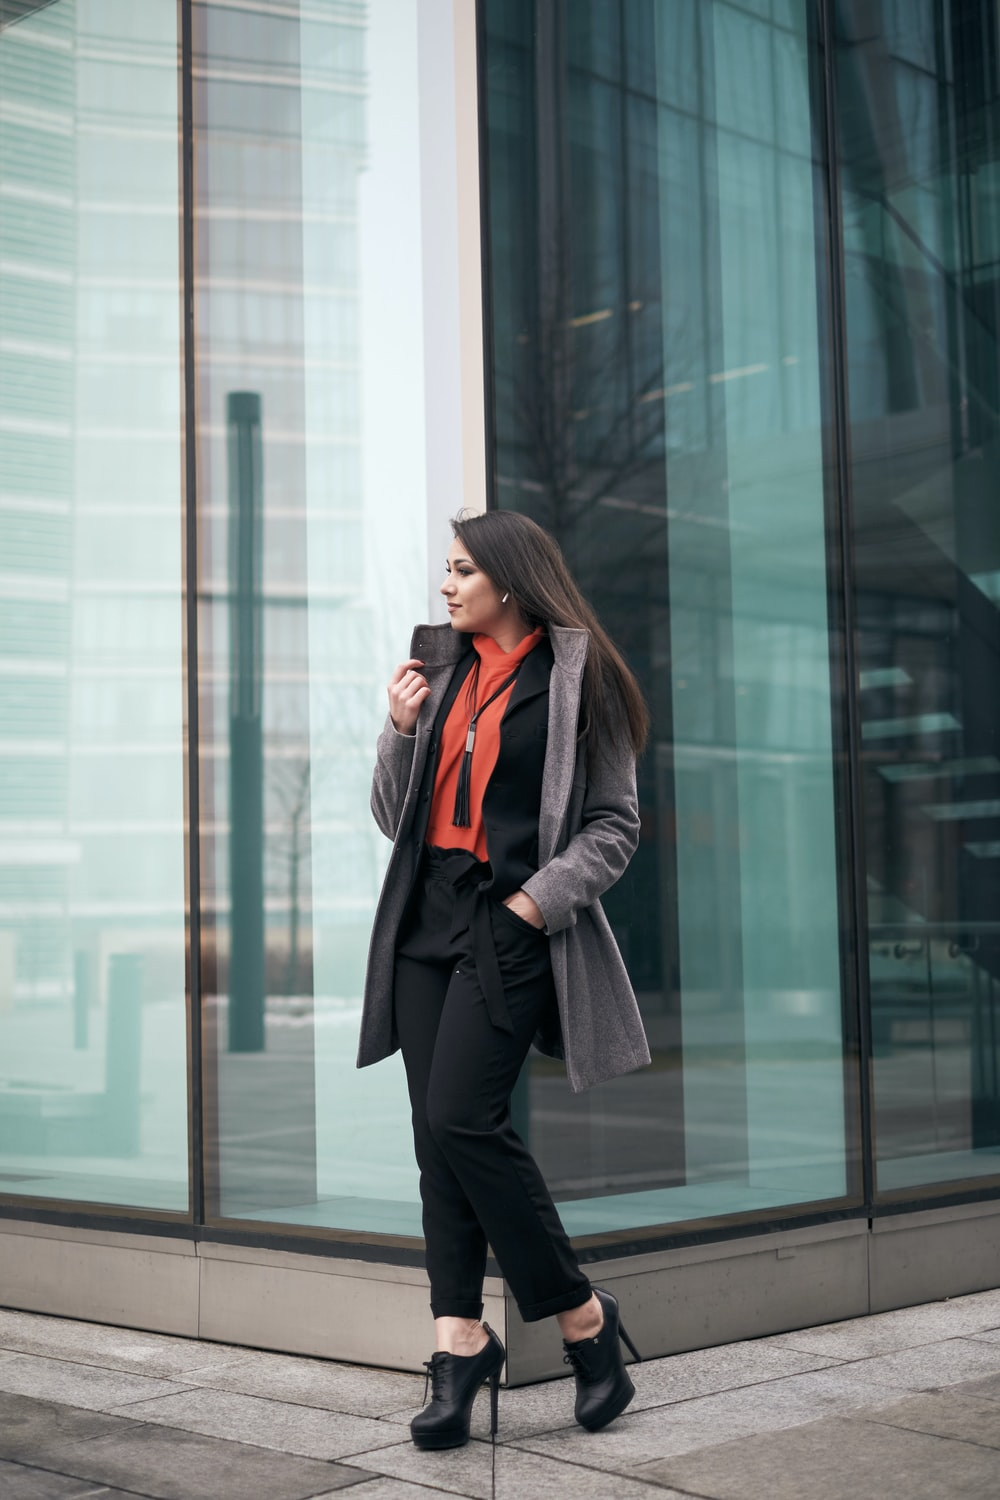 woman walking beside glass building